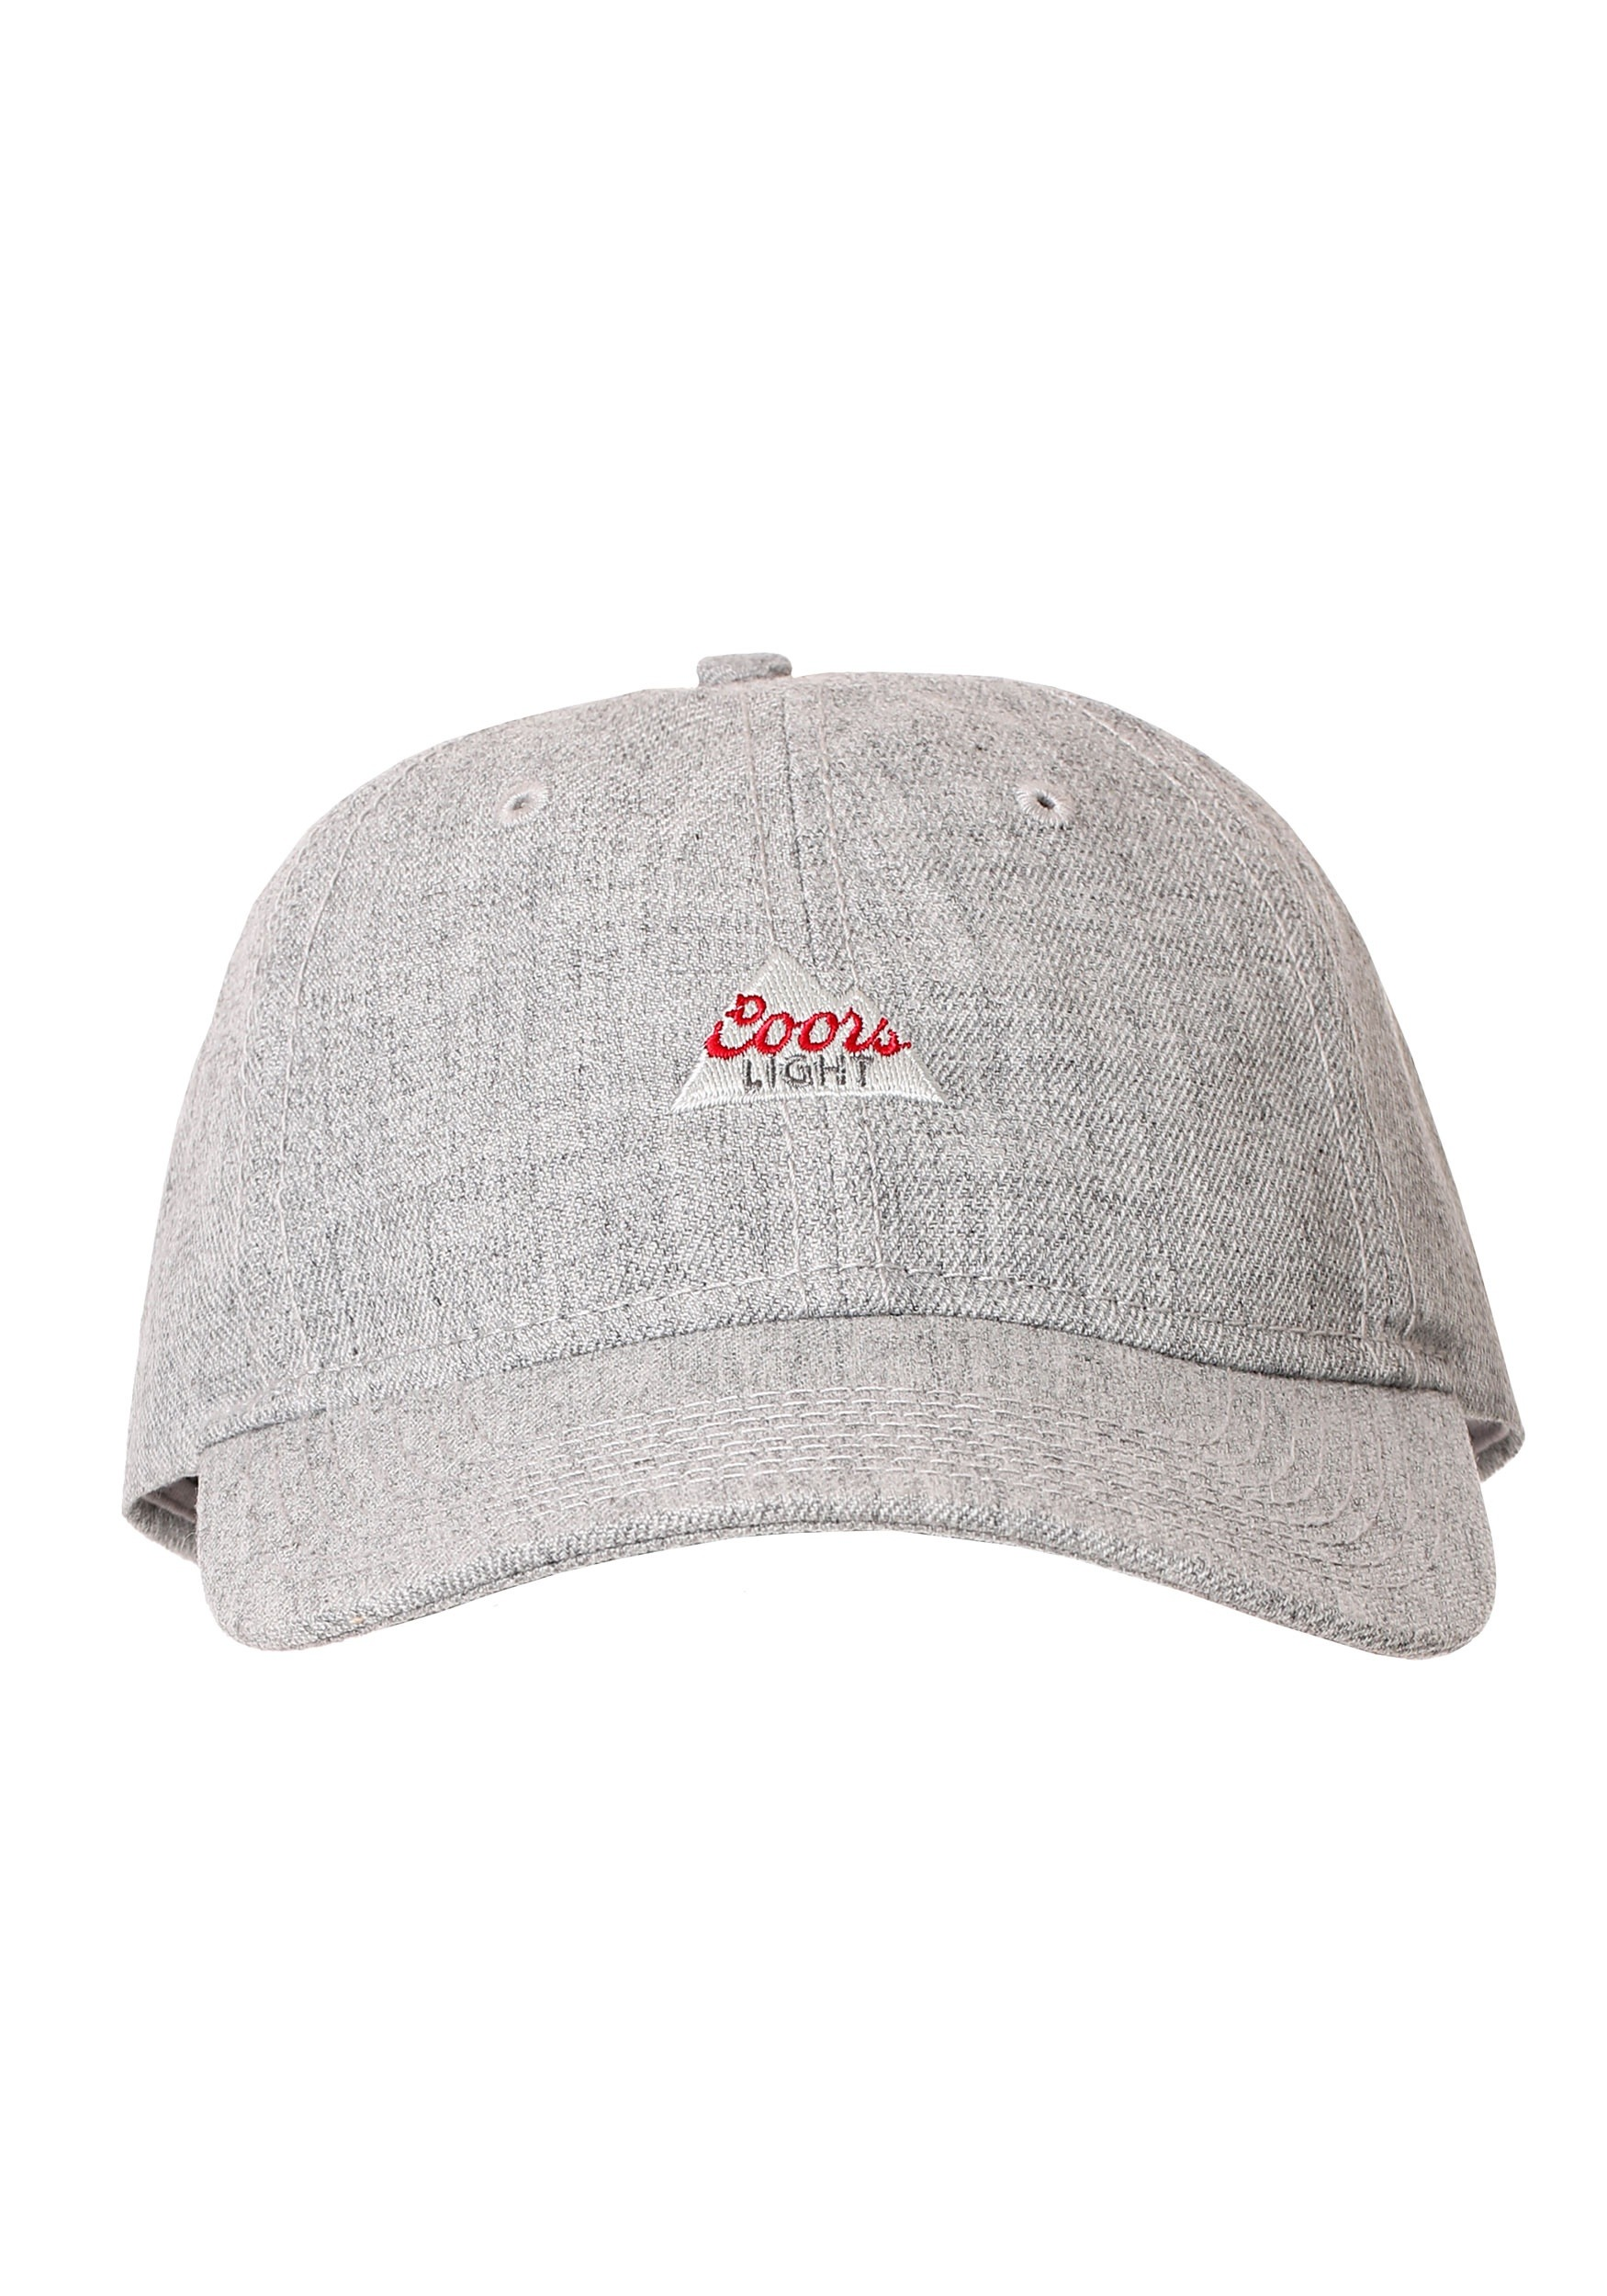 bd10f17077d23 Coors Light Logo Heather Grey Dad Hat